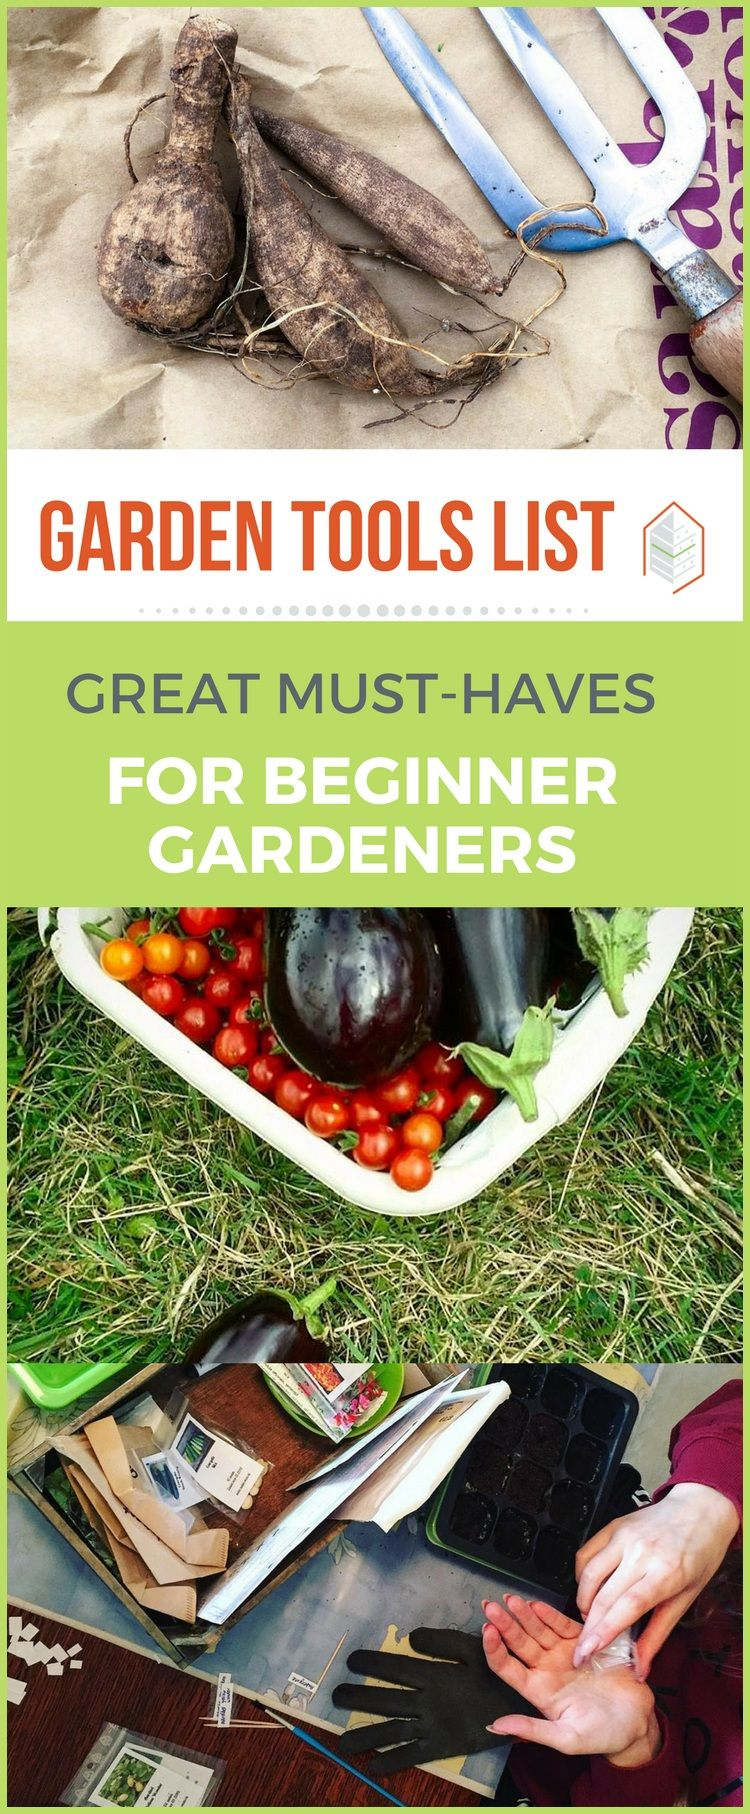 Here Is A Garden Tools List That You Can Use If You Want To Start Gardening.  Here Are Suggestions Of Garden Tools That Many Gardeners Would Find  Valuable.